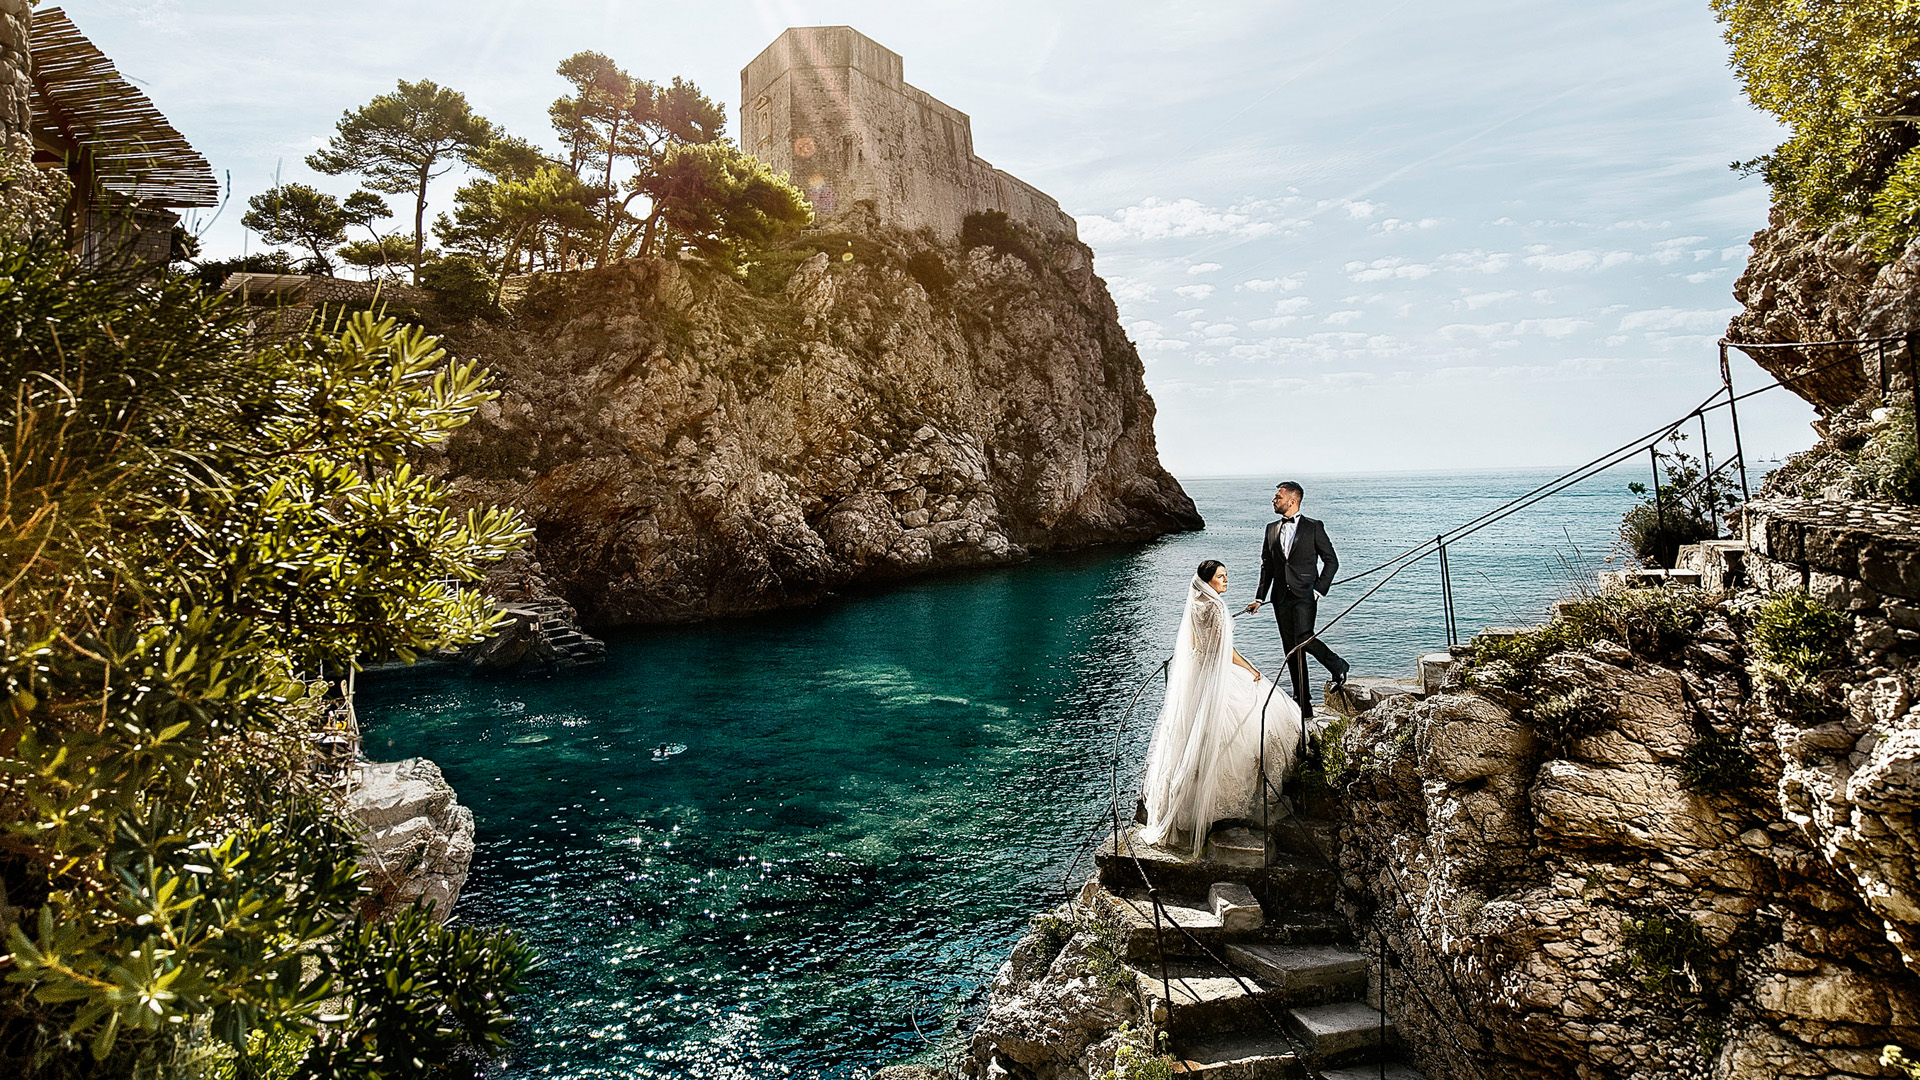 After wedding shooting in Dubrovnik